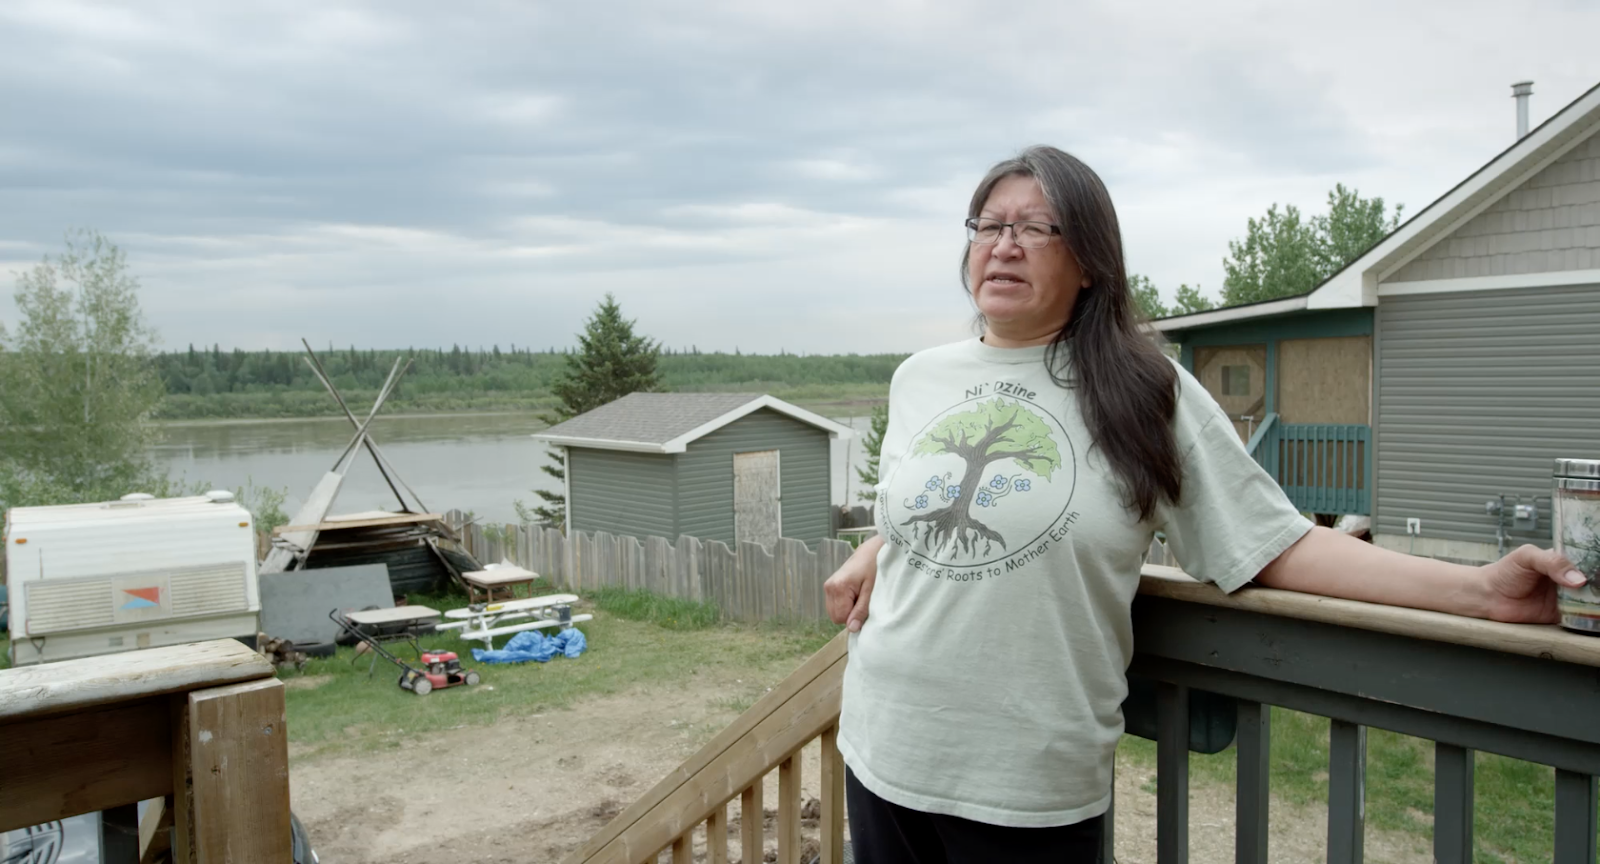 Jean L'Hommecourt of Fort Mckay, Alberta, interviewed in the documentary film Earth